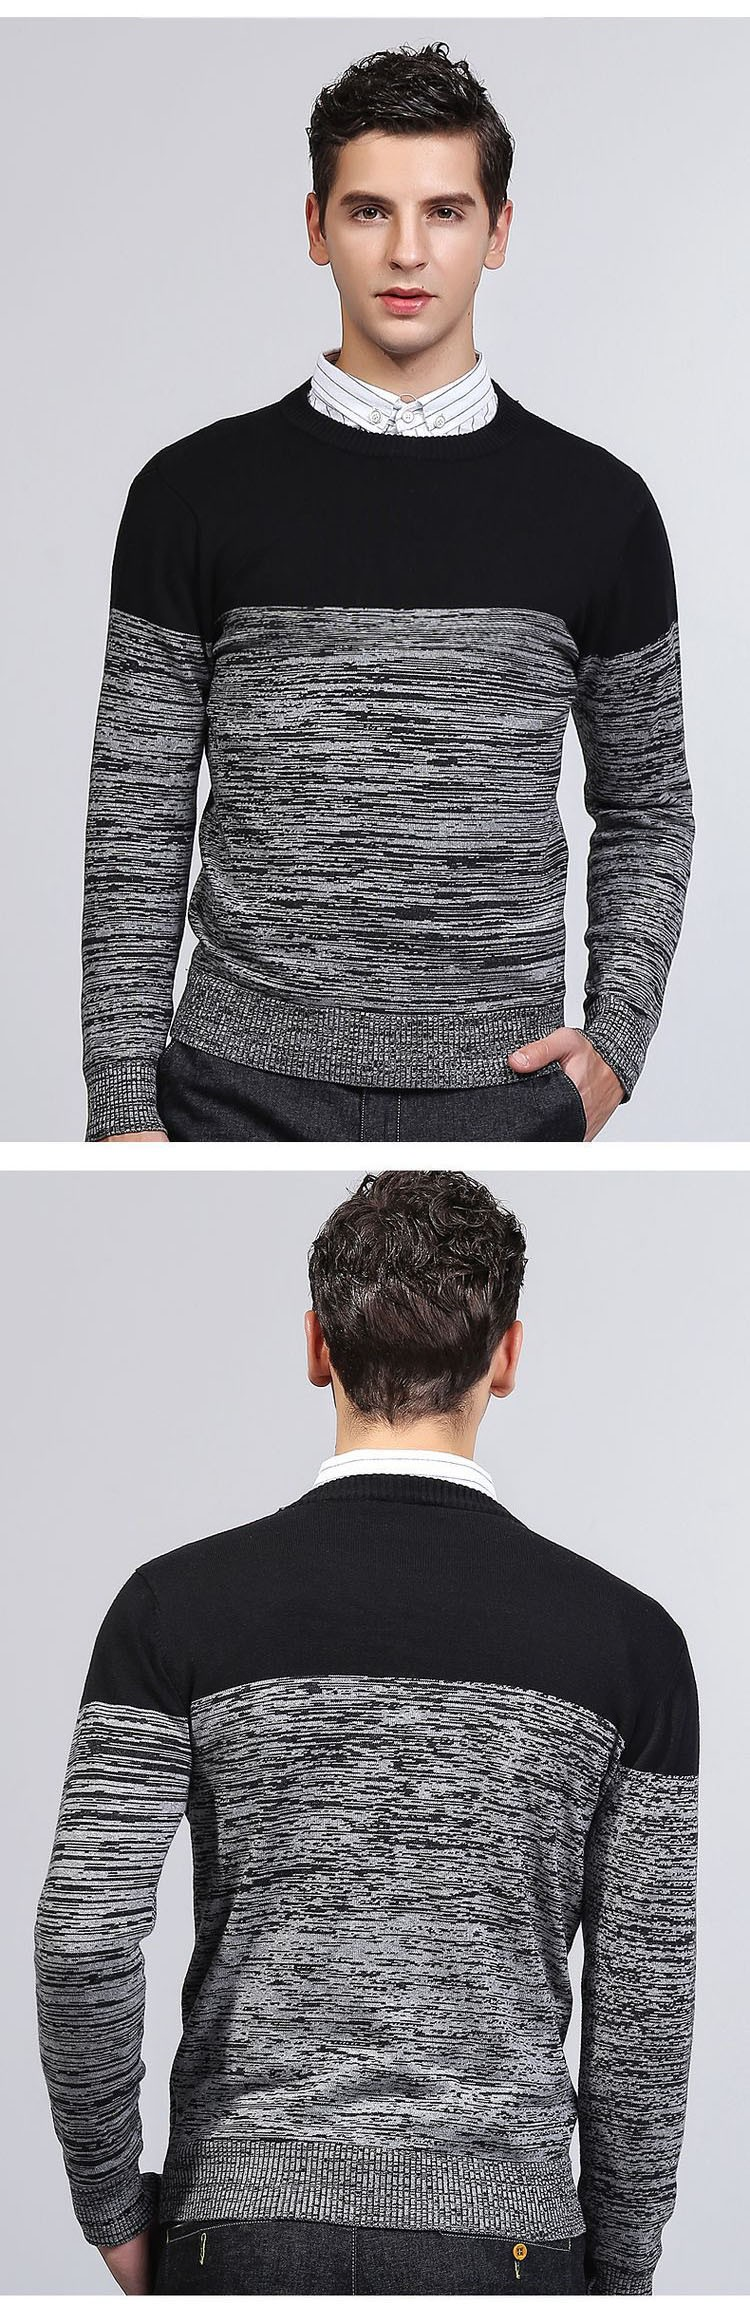 Aolamegs Men Sweater Fashion Hit Color Knitted Pullovers 2017 Spring New Men\'s Classic Casual Slim Fit Knitting Sweter Hombre (4)